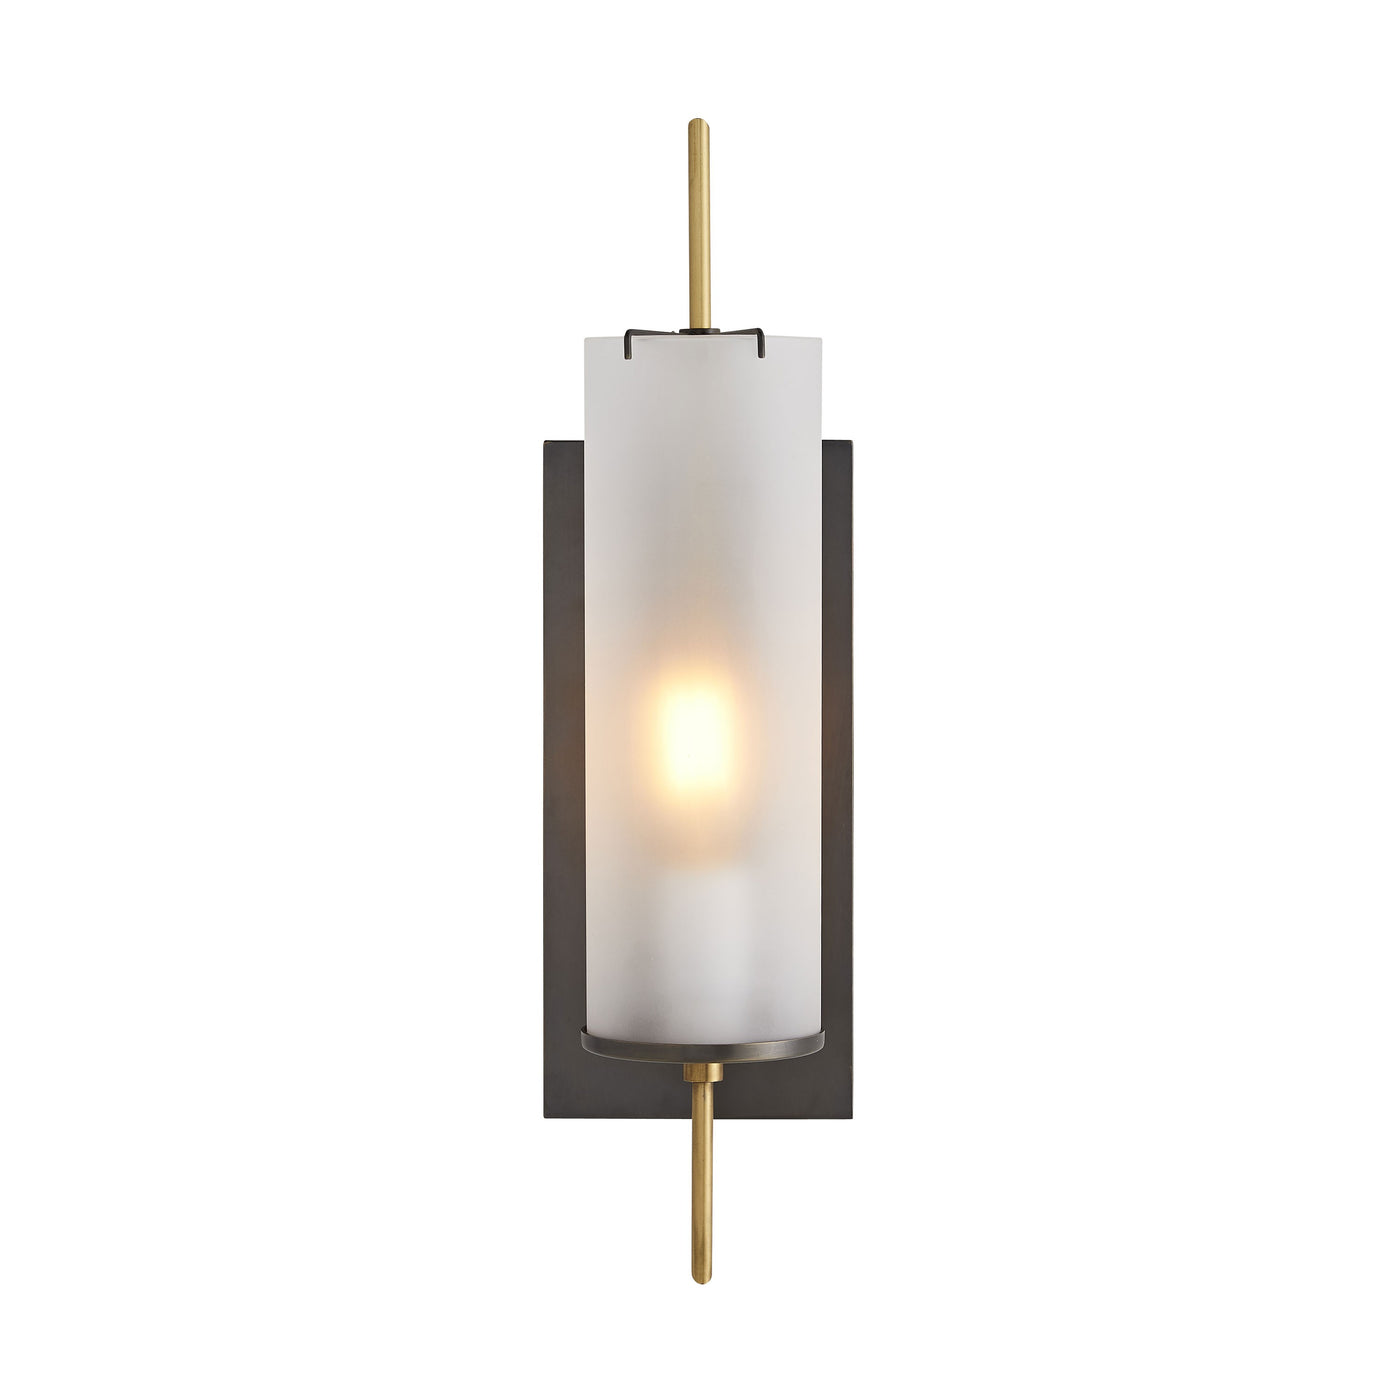 arteriors stefan wall sconce bronze light on